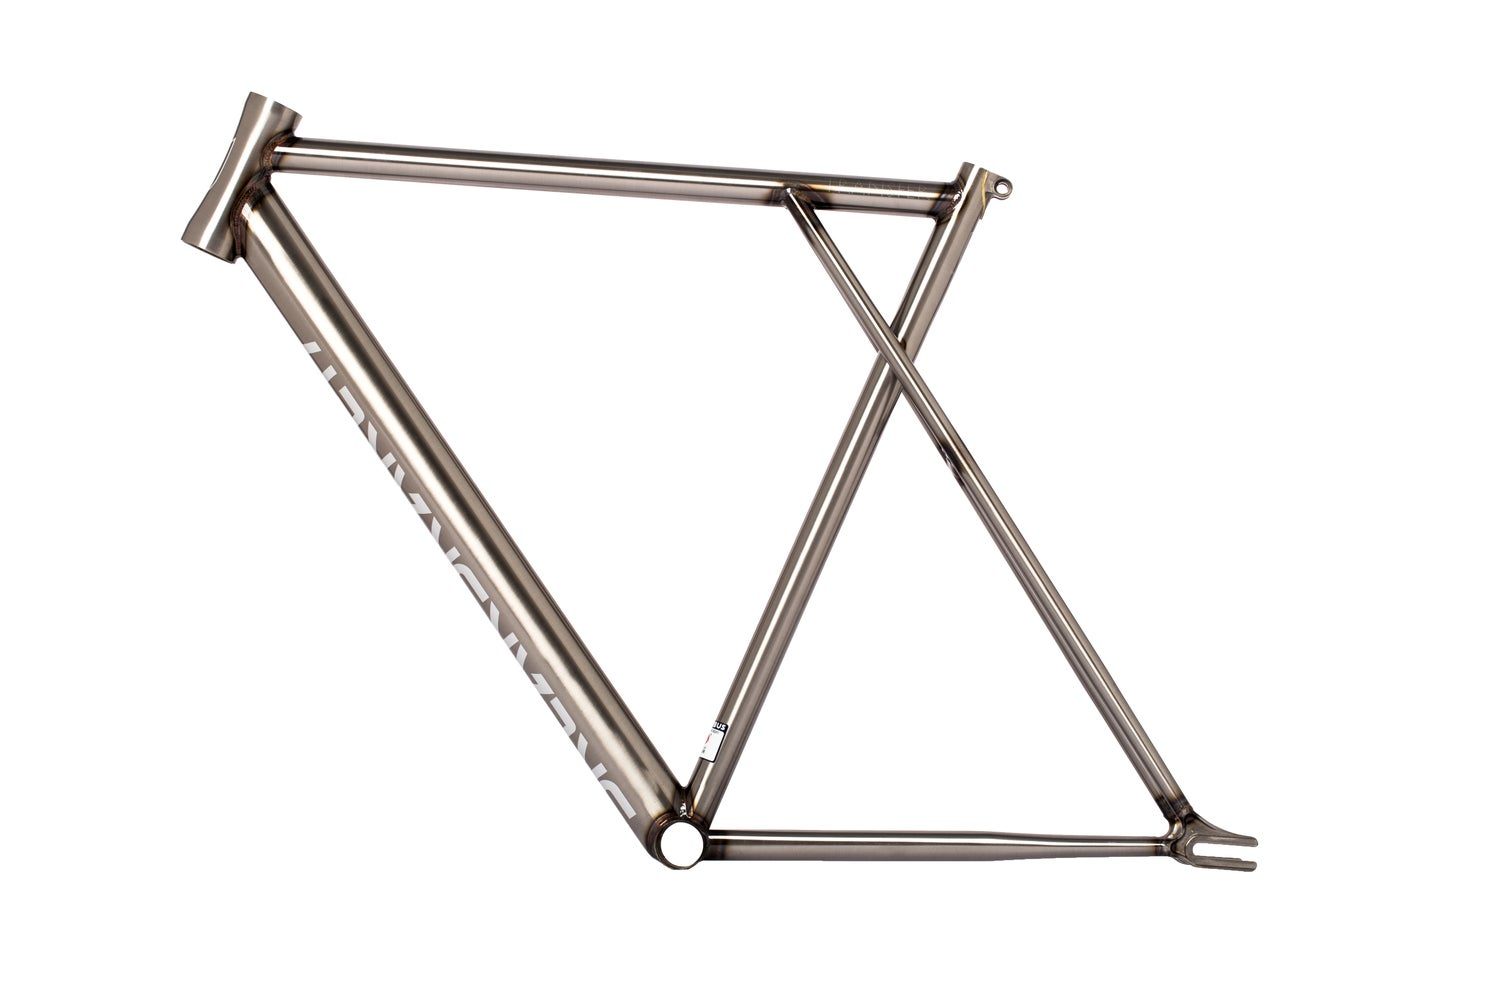 Image of TRANSFER LOW PRO TRACK FRAME-RAW FINISH